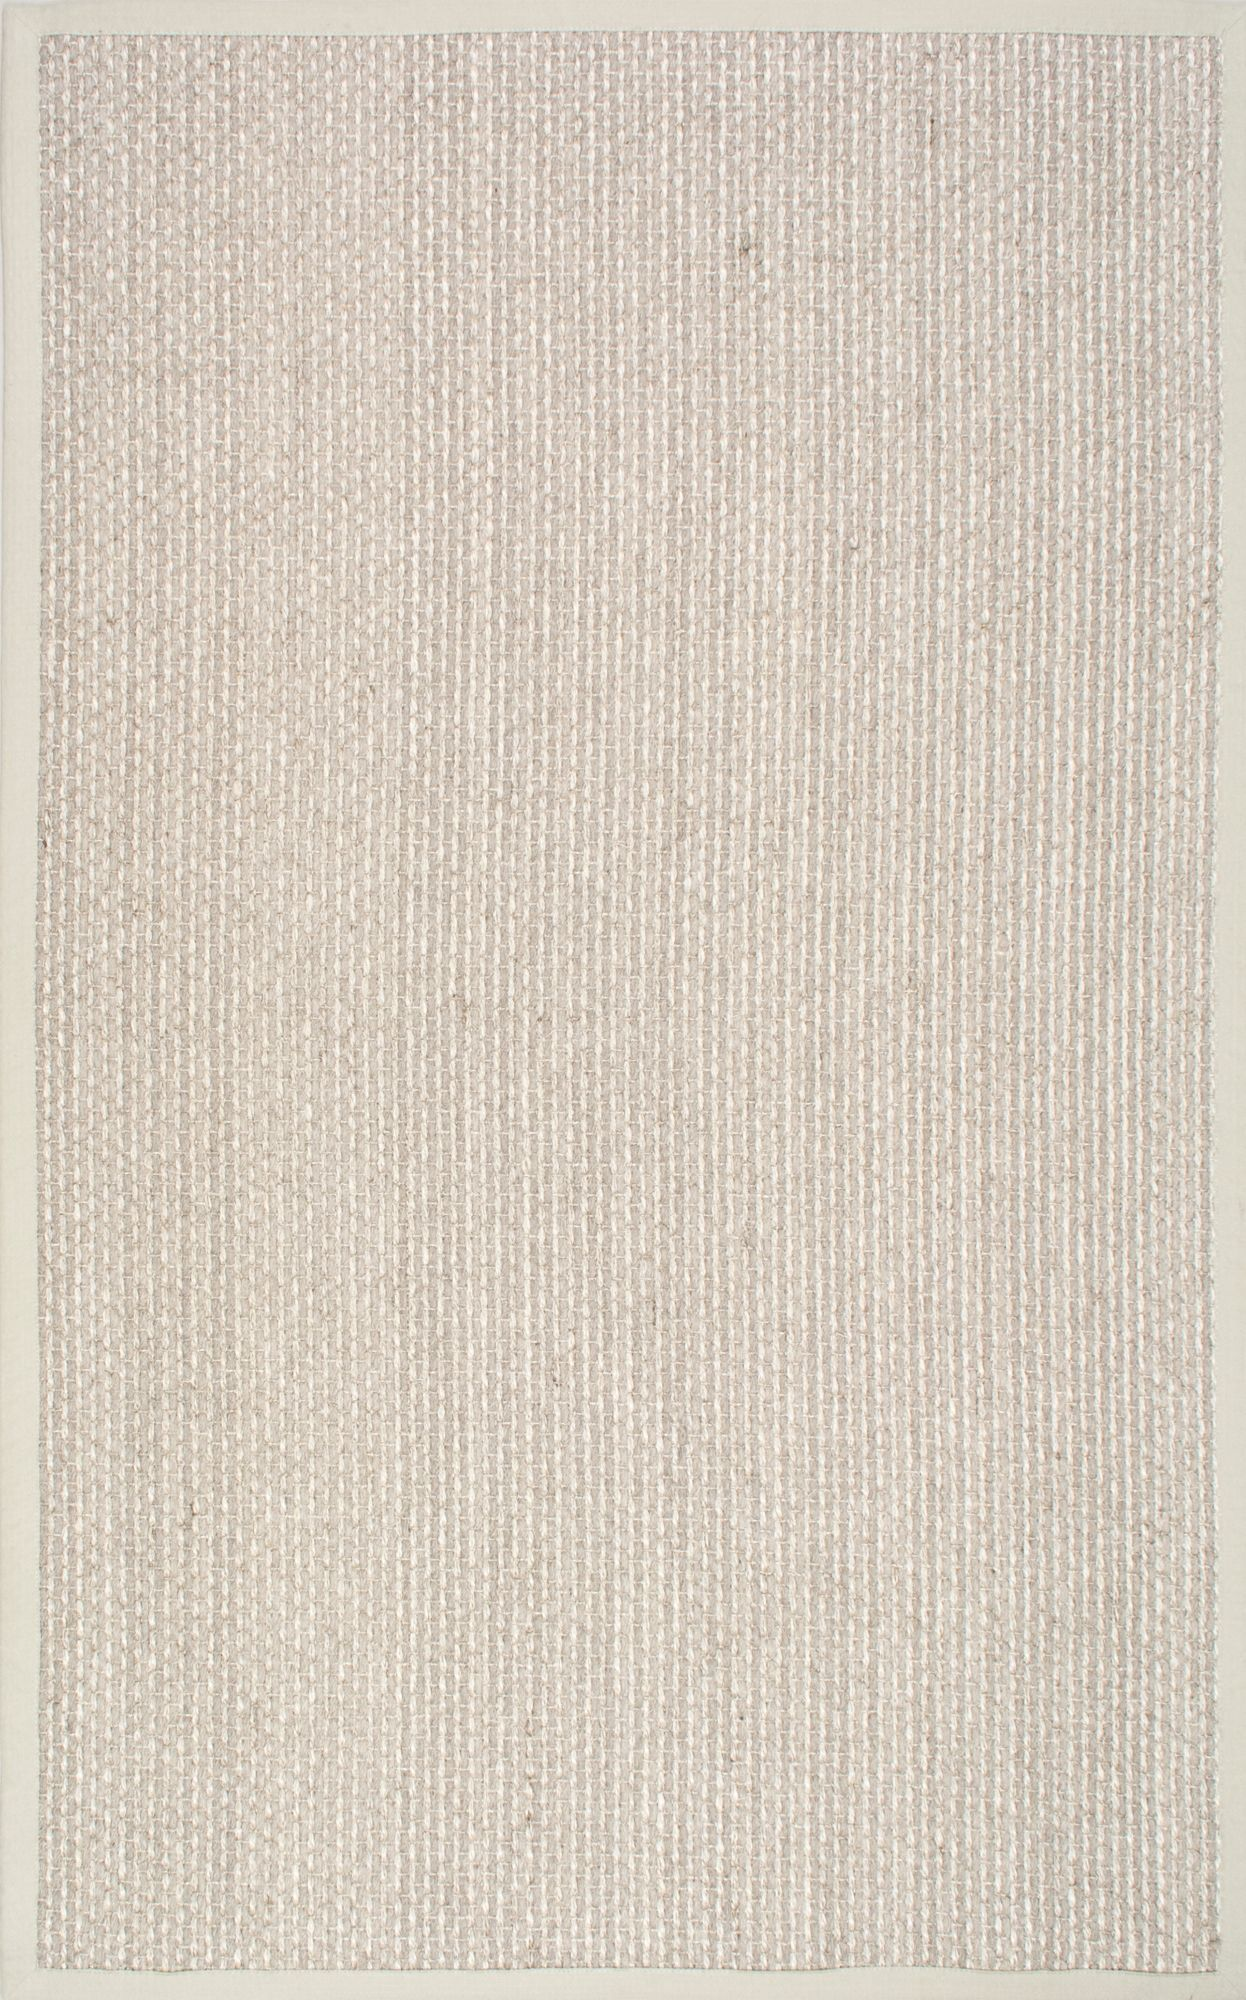 Sisal Tess Color Natural Size Rugs